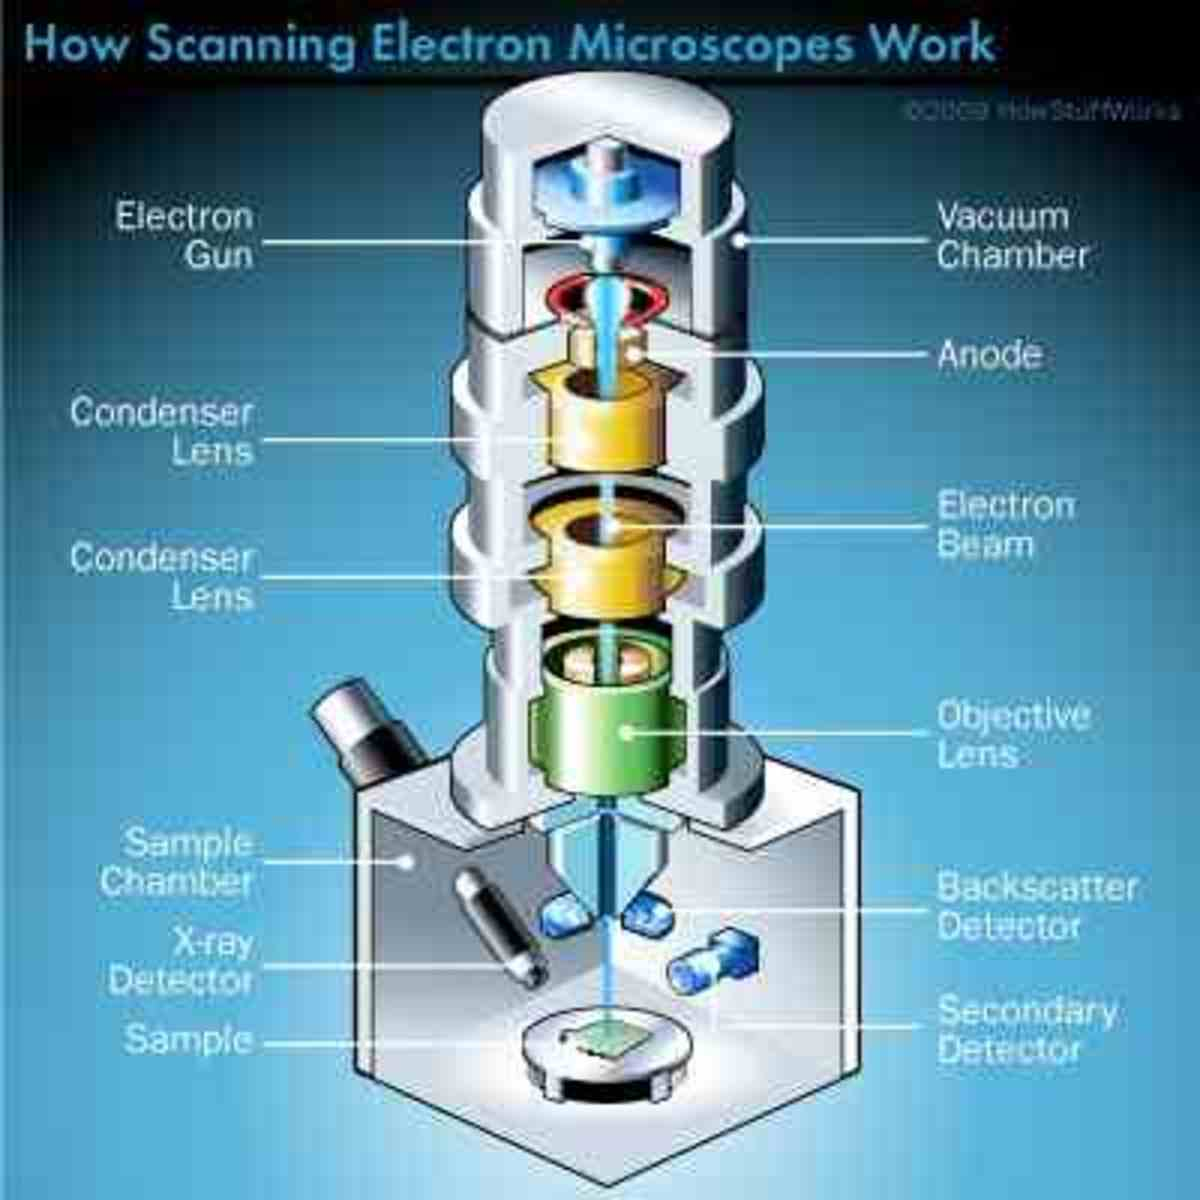 microscopes-a-fascinating-look-at-the-micro-world